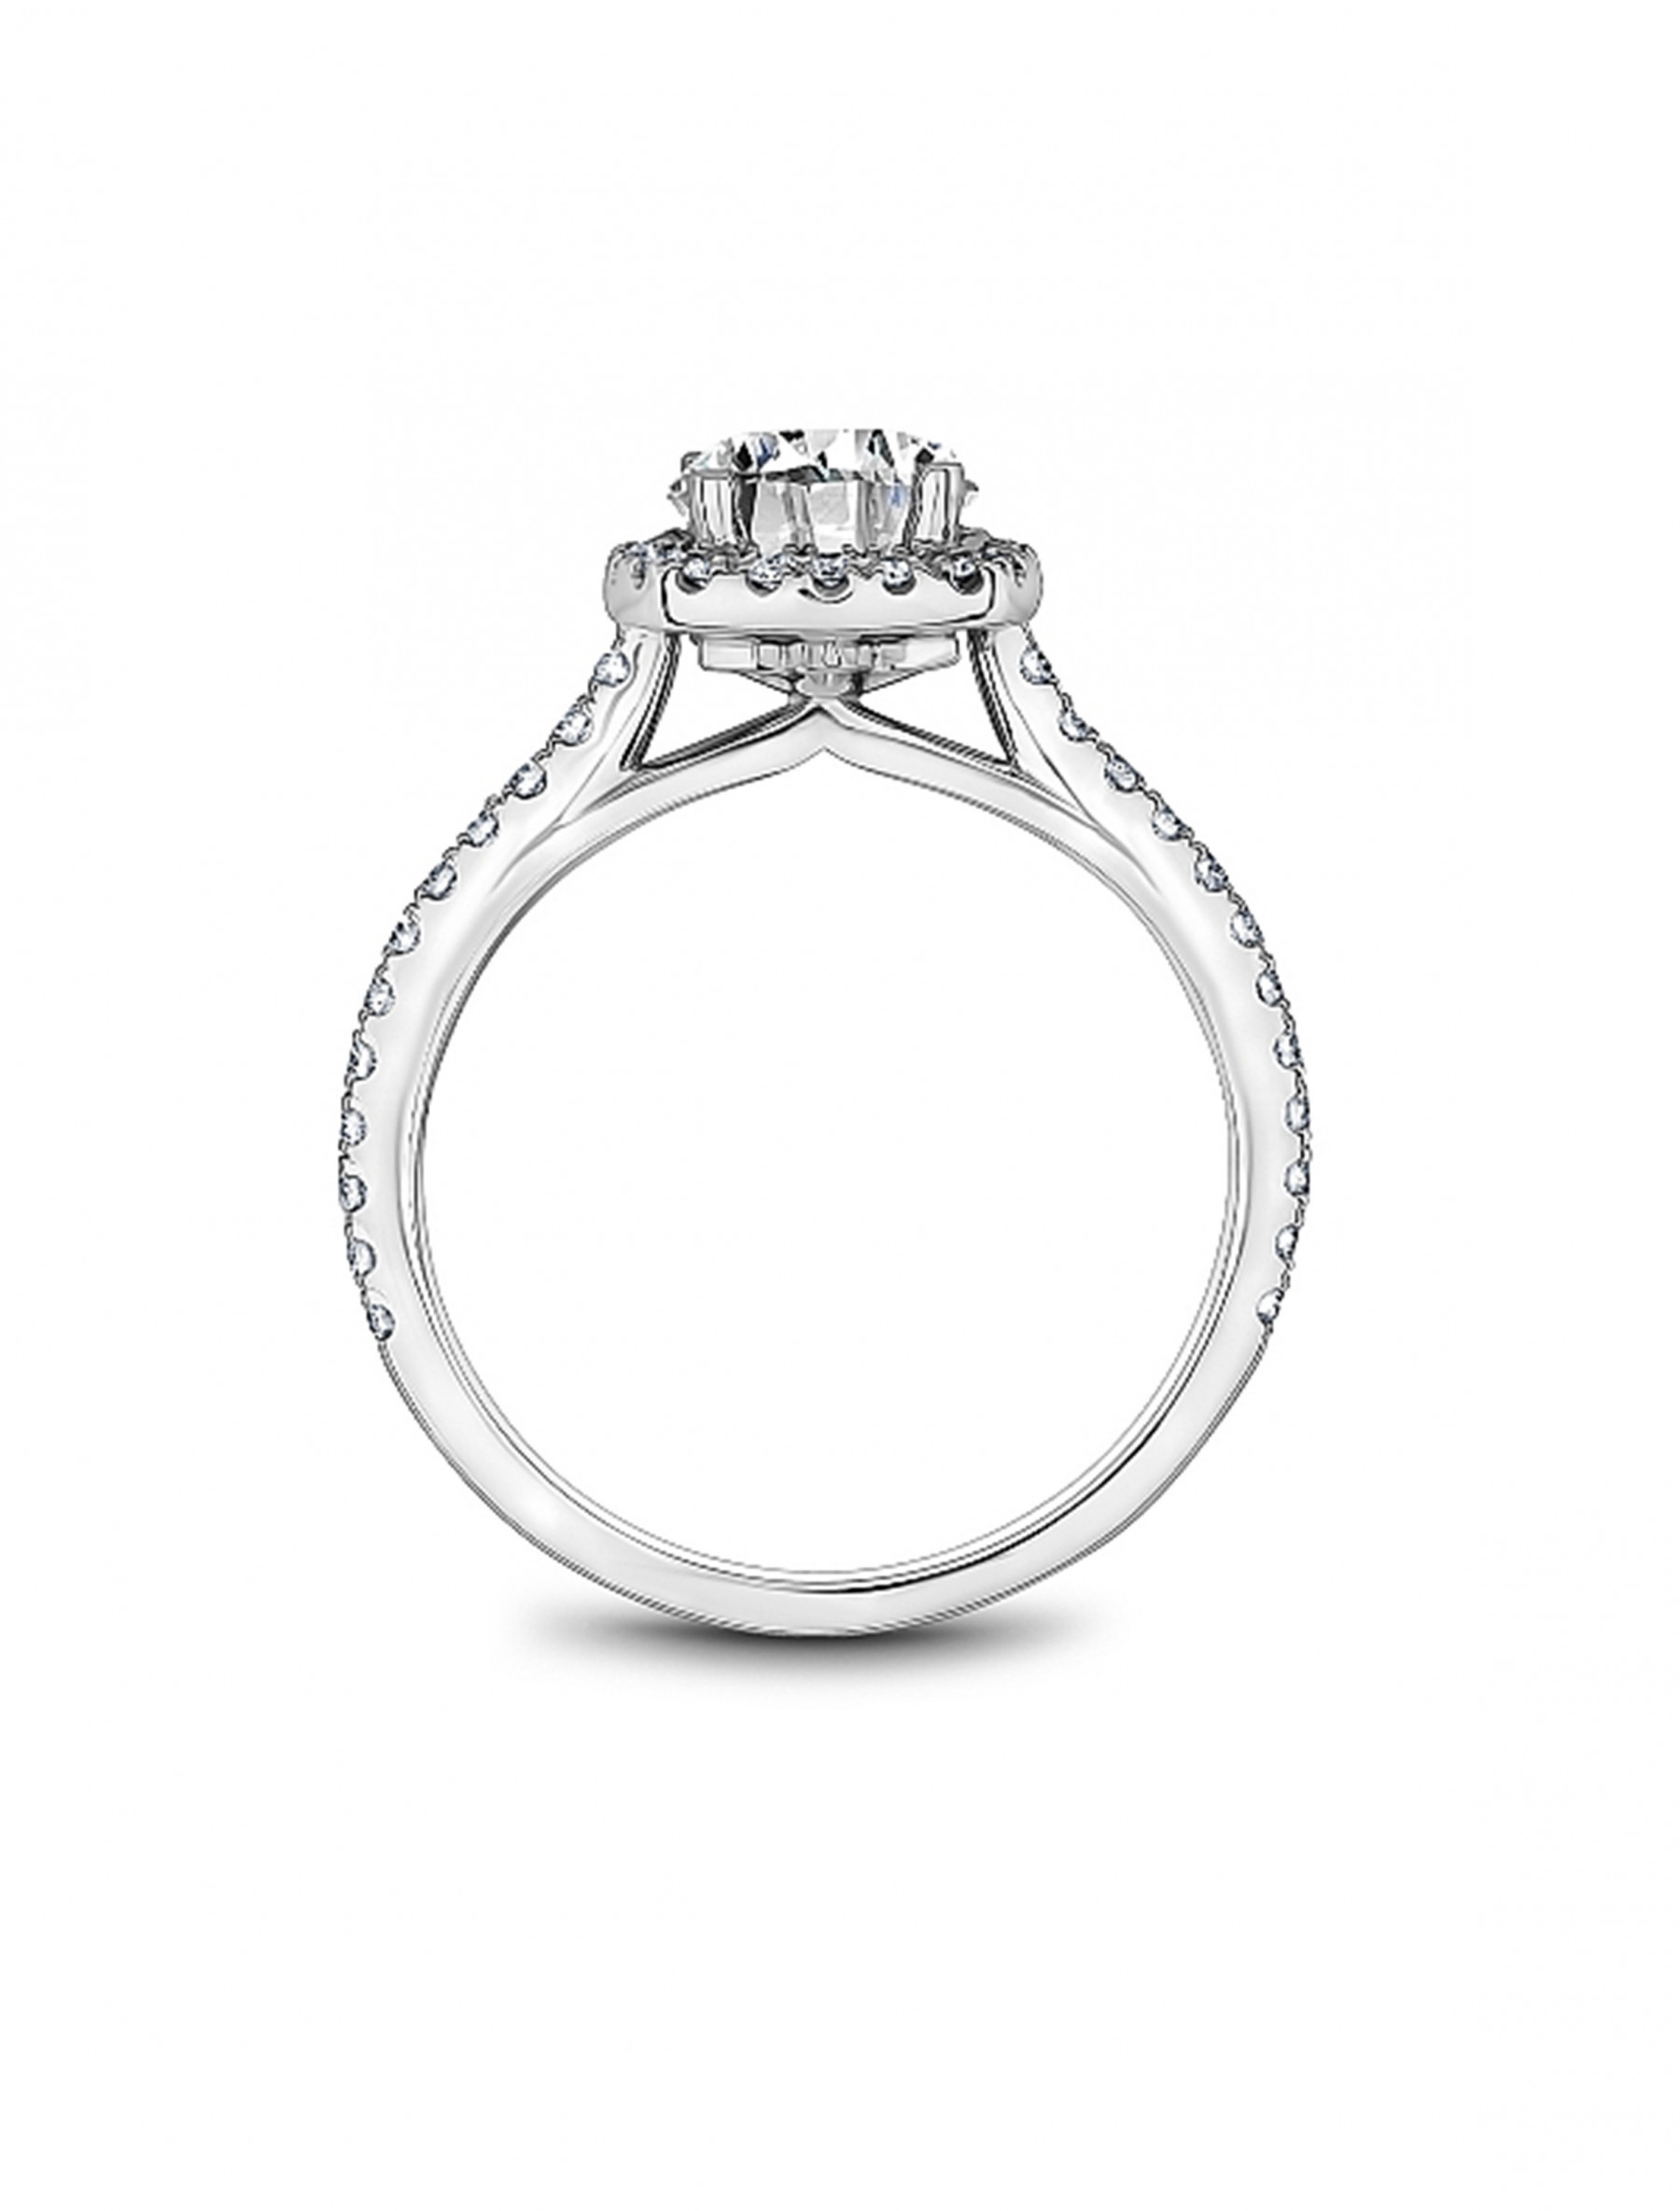 Noam Carver Round Cushion Halo Diamond Engagement Ring Setting in 18K White Gold side view